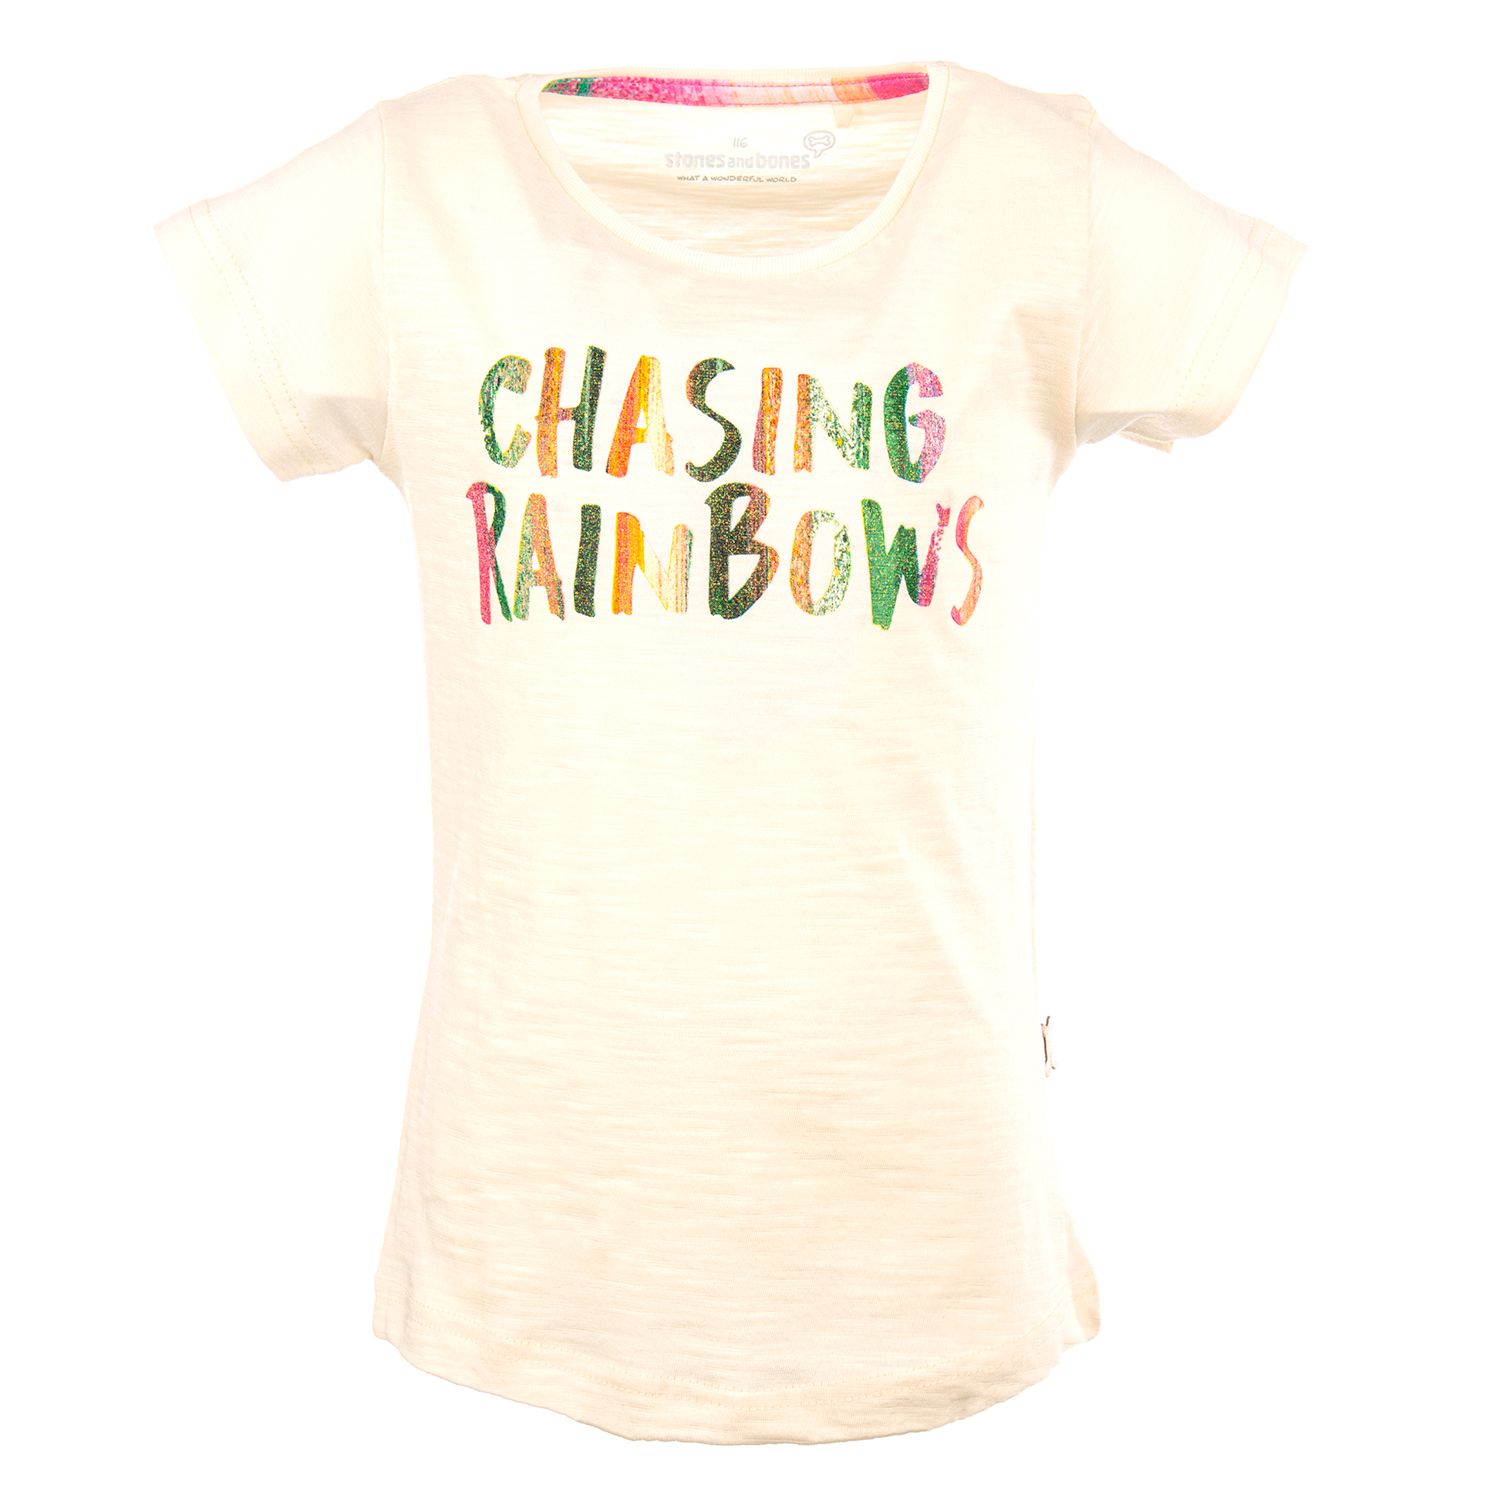 Camille - CHASING RAINBOWS off white